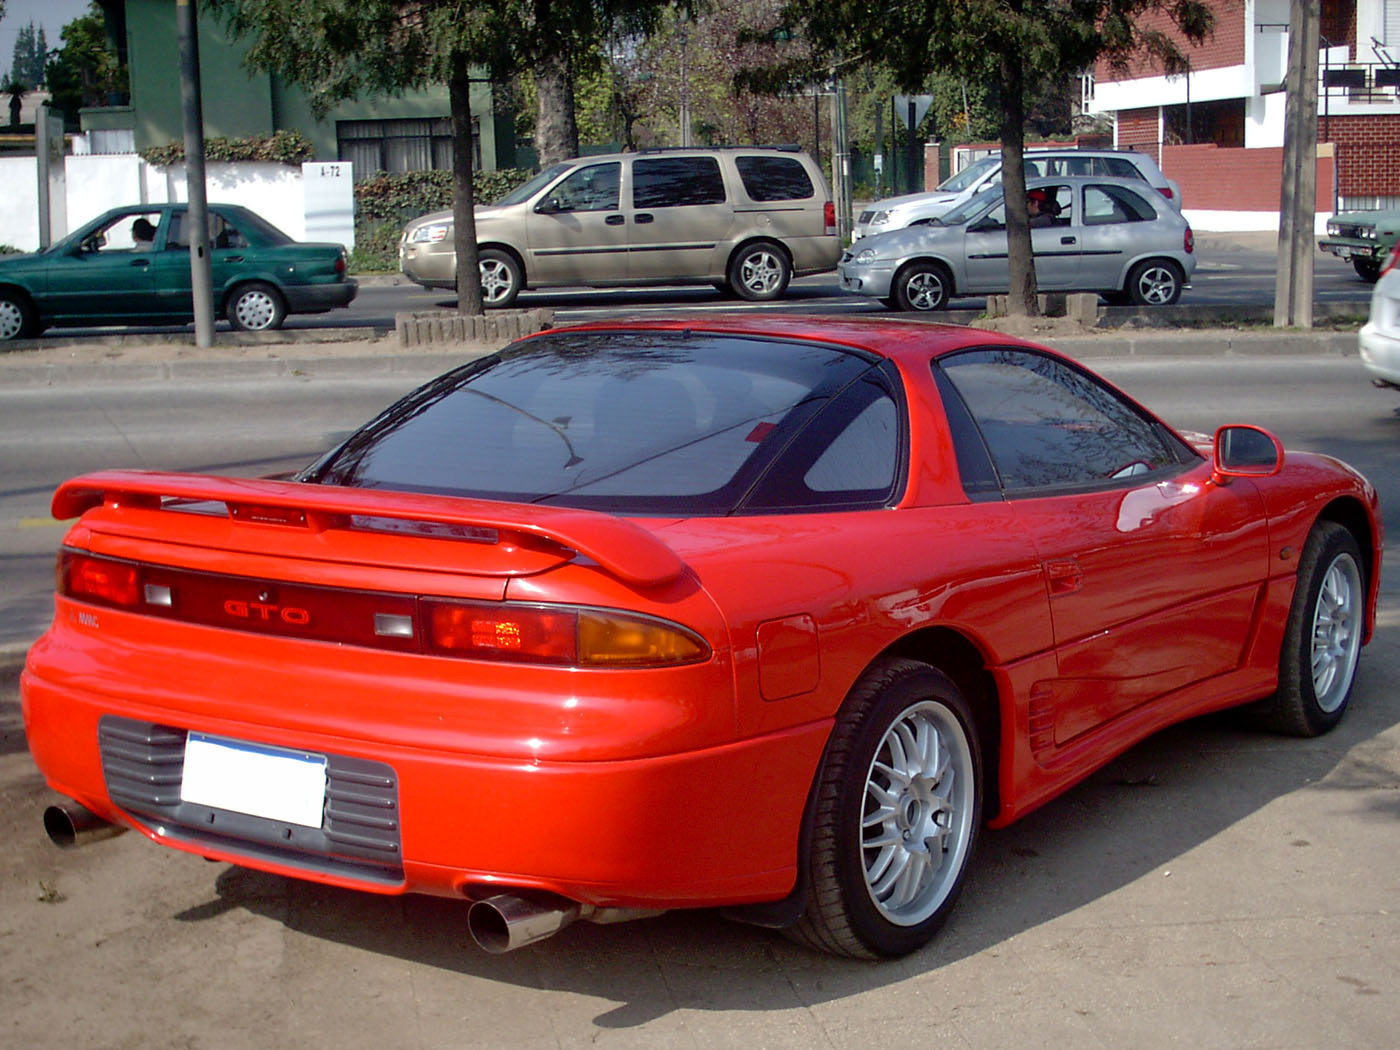 https://upload.wikimedia.org/wikipedia/commons/f/f6/Mitsubishi_GTO_VR4_1990_%2814471501841%29.jpg